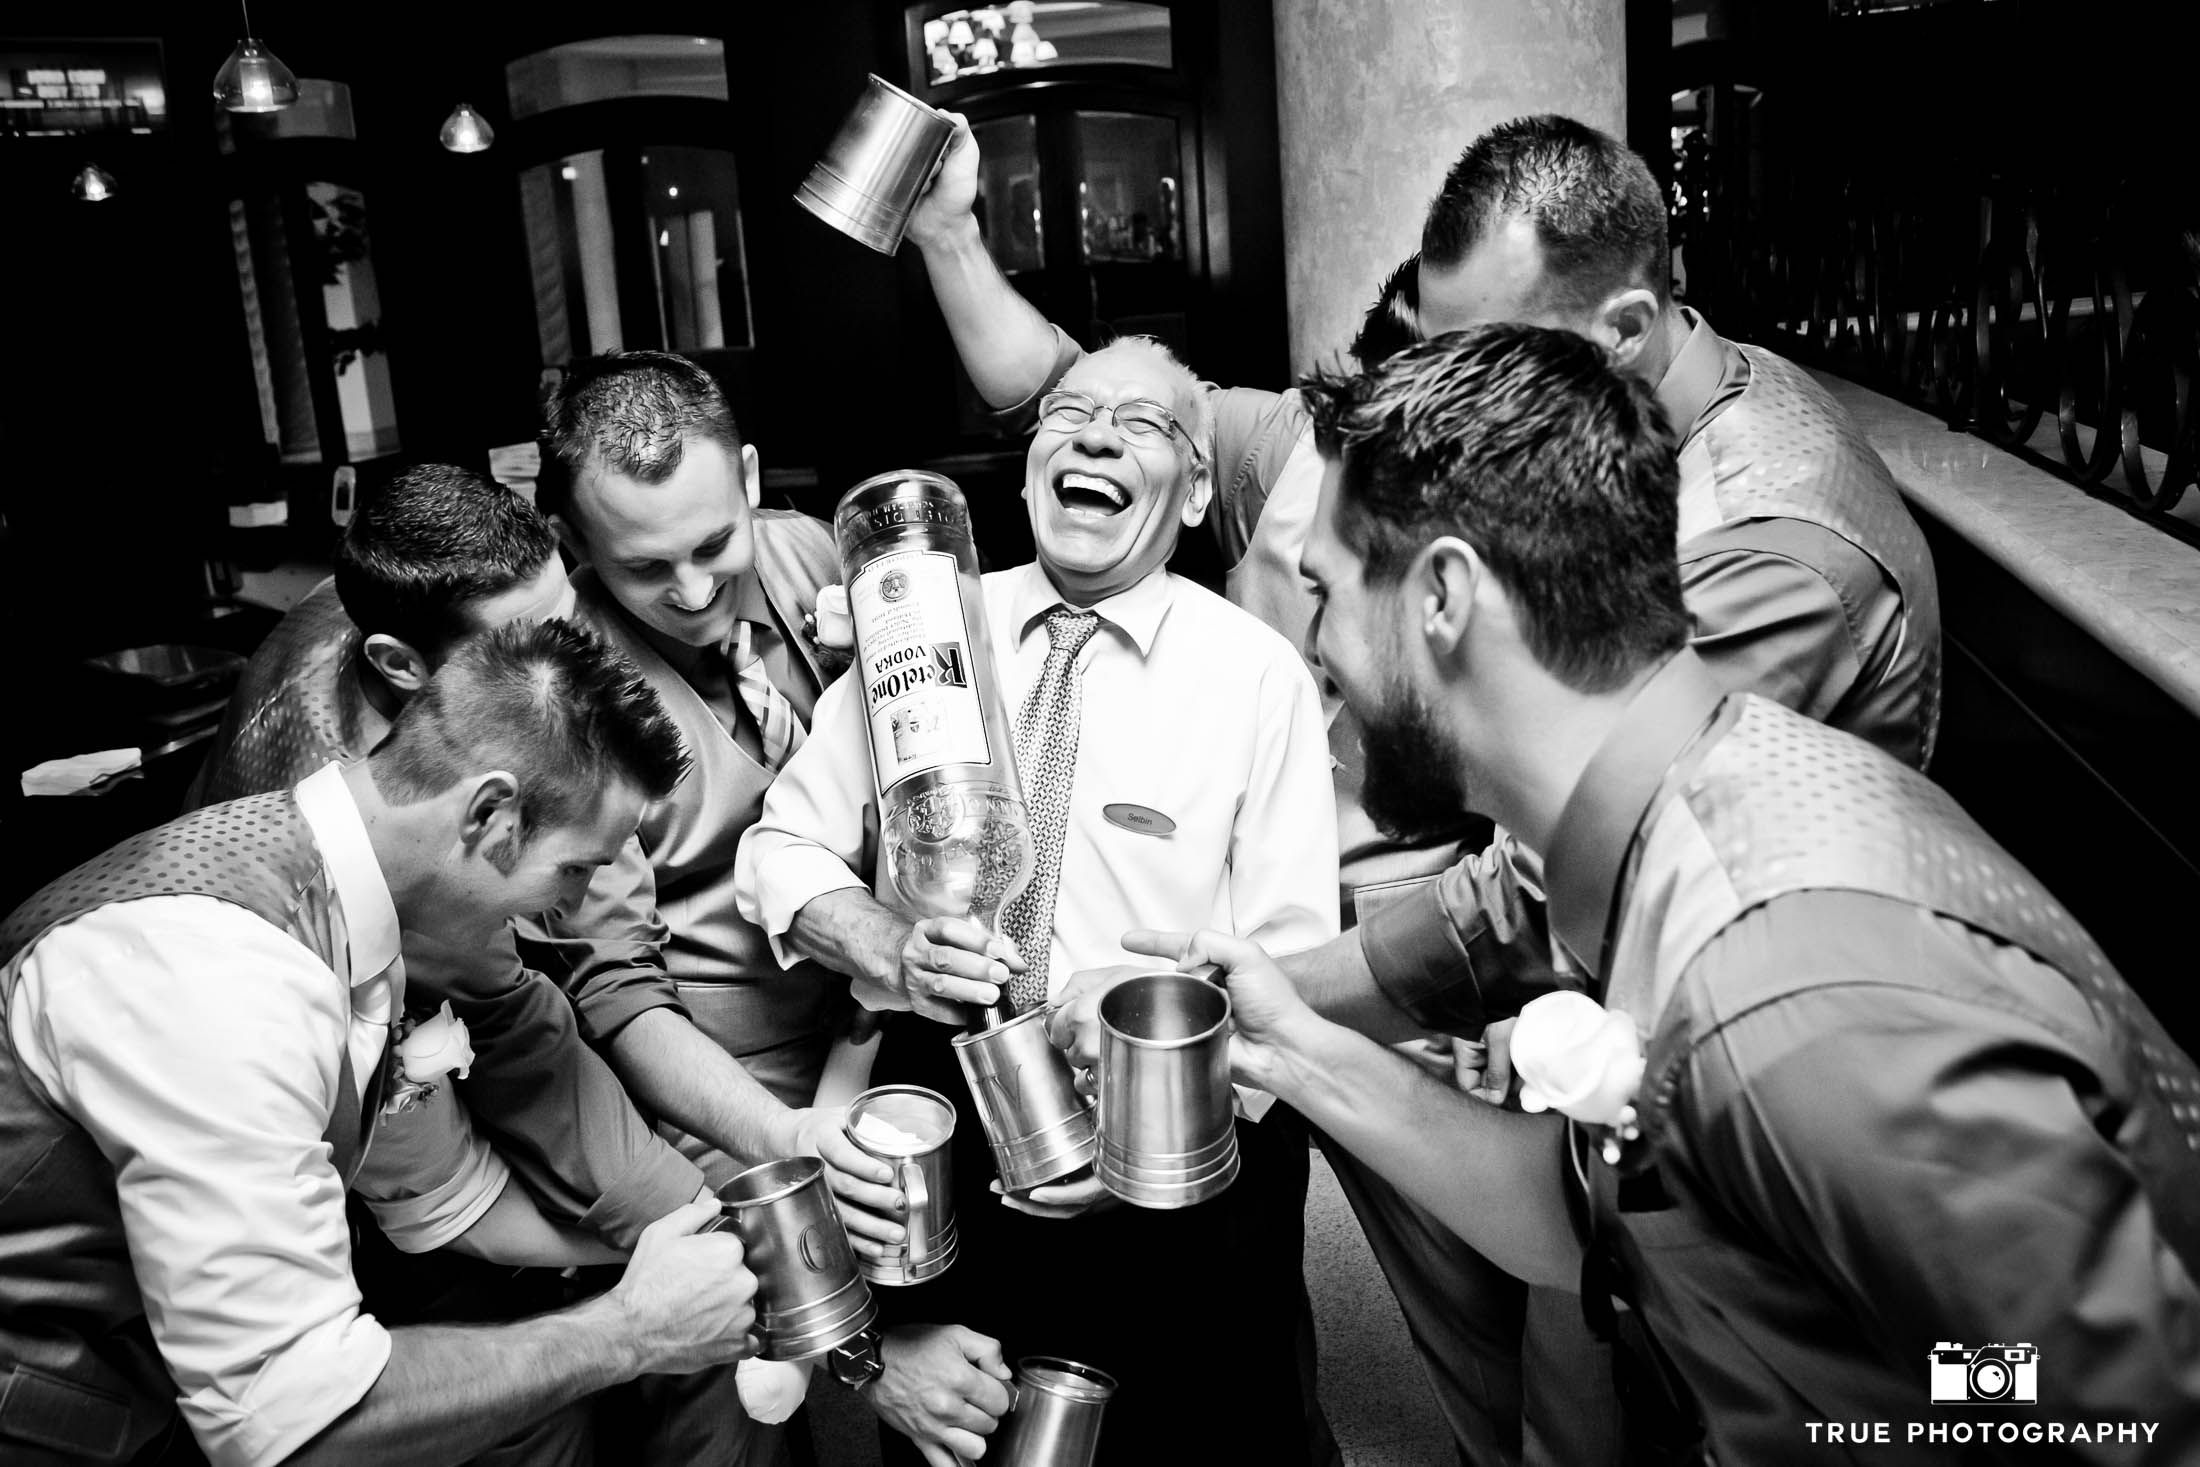 Funny Candid Moment Of Groomsmen With Dad Drinking Big Bottle Liquor At Wedding Reception